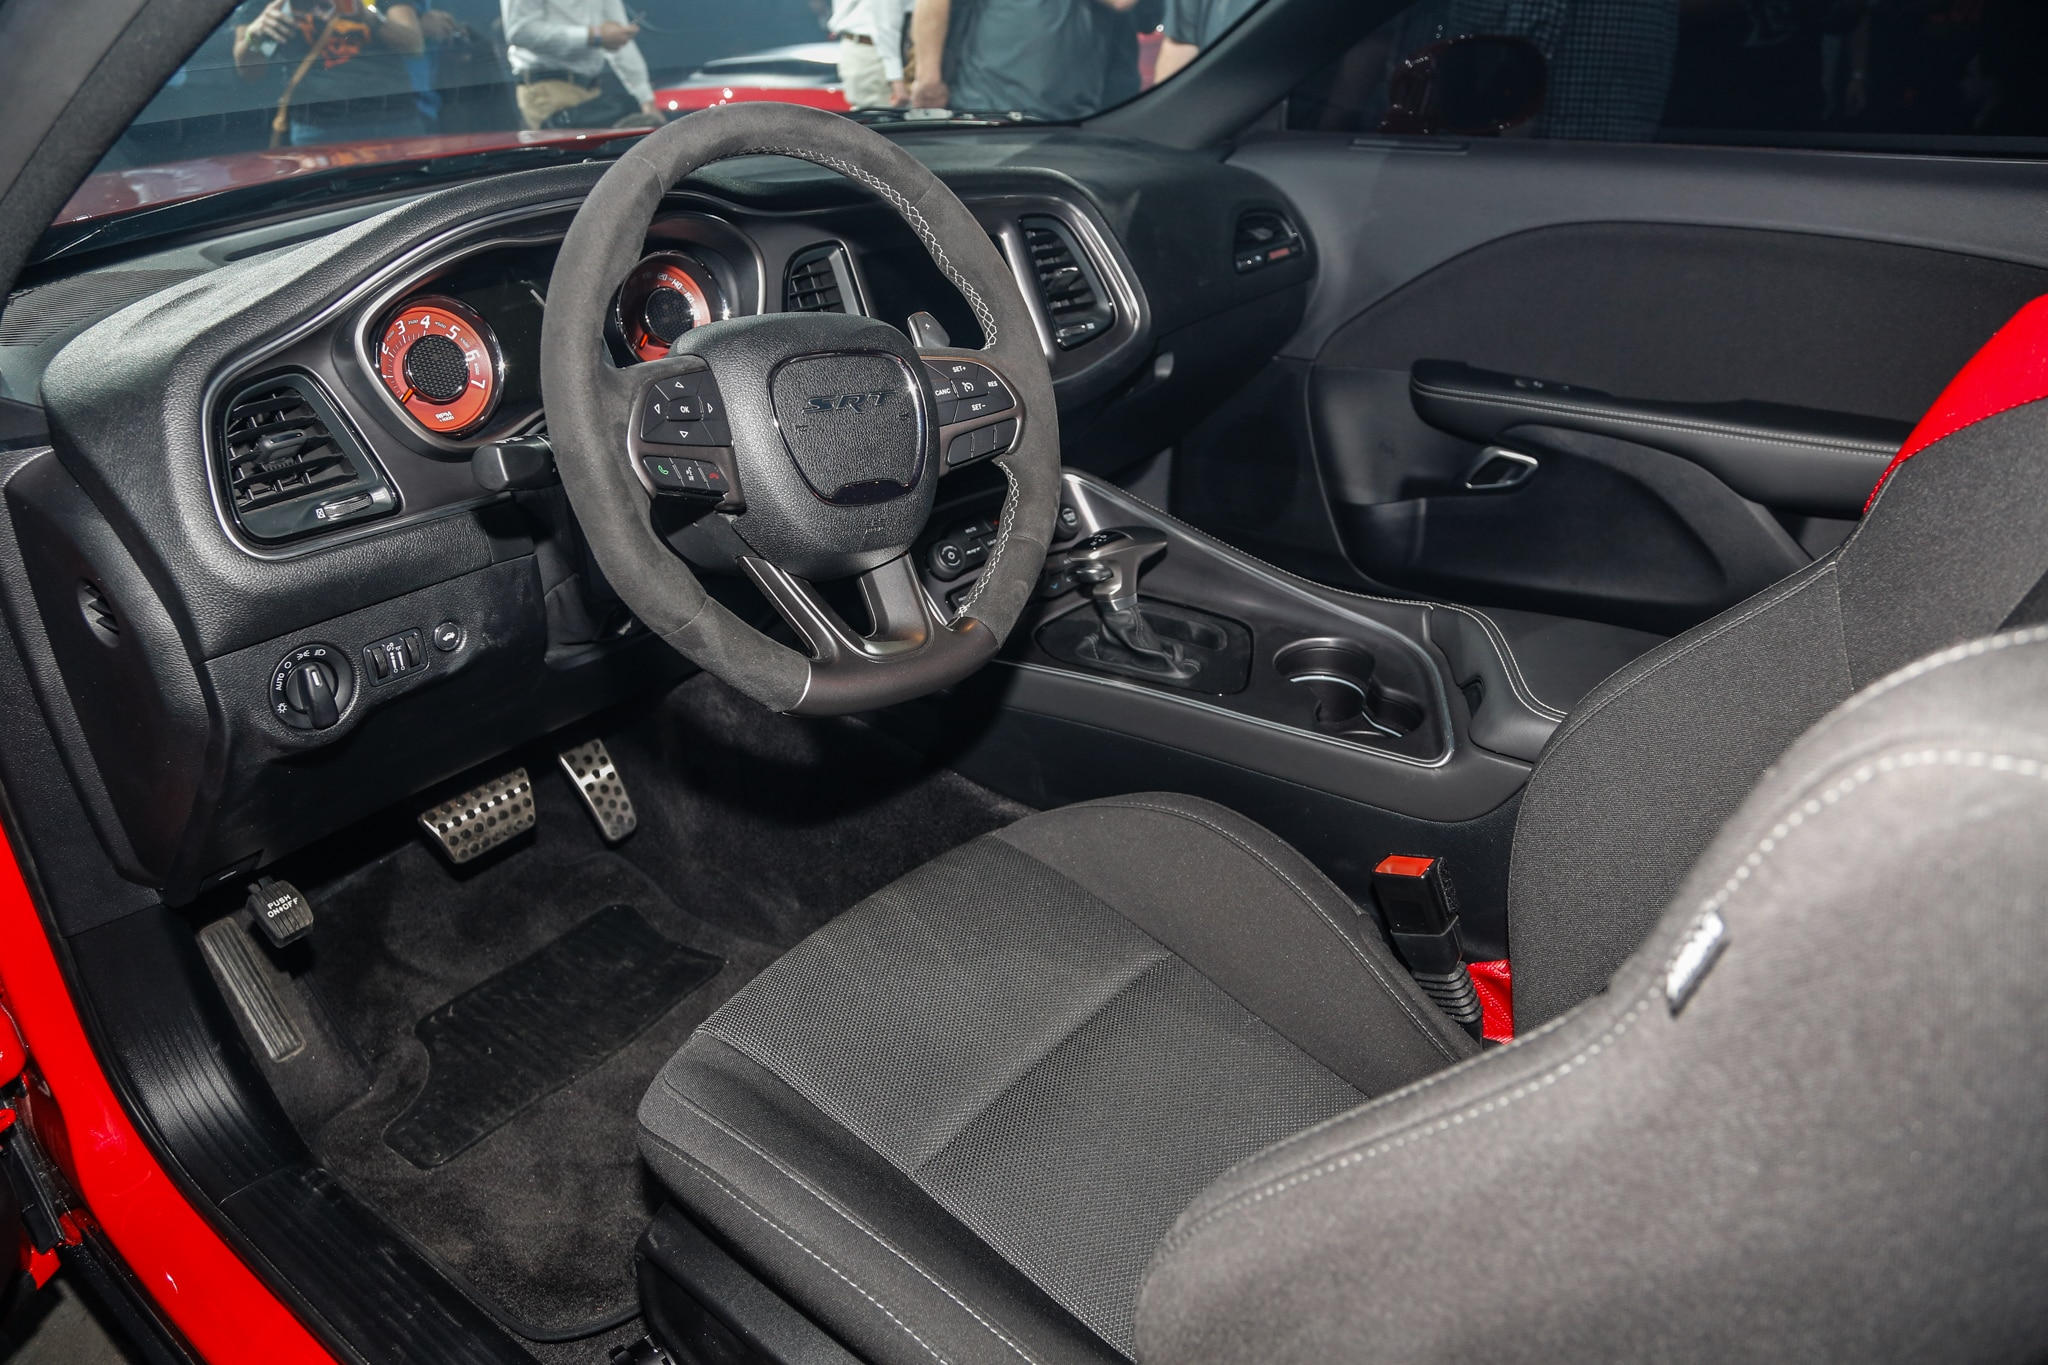 2018 Dodge Challenger Srt Demon Interior View 1 Motor Trend En Espanol